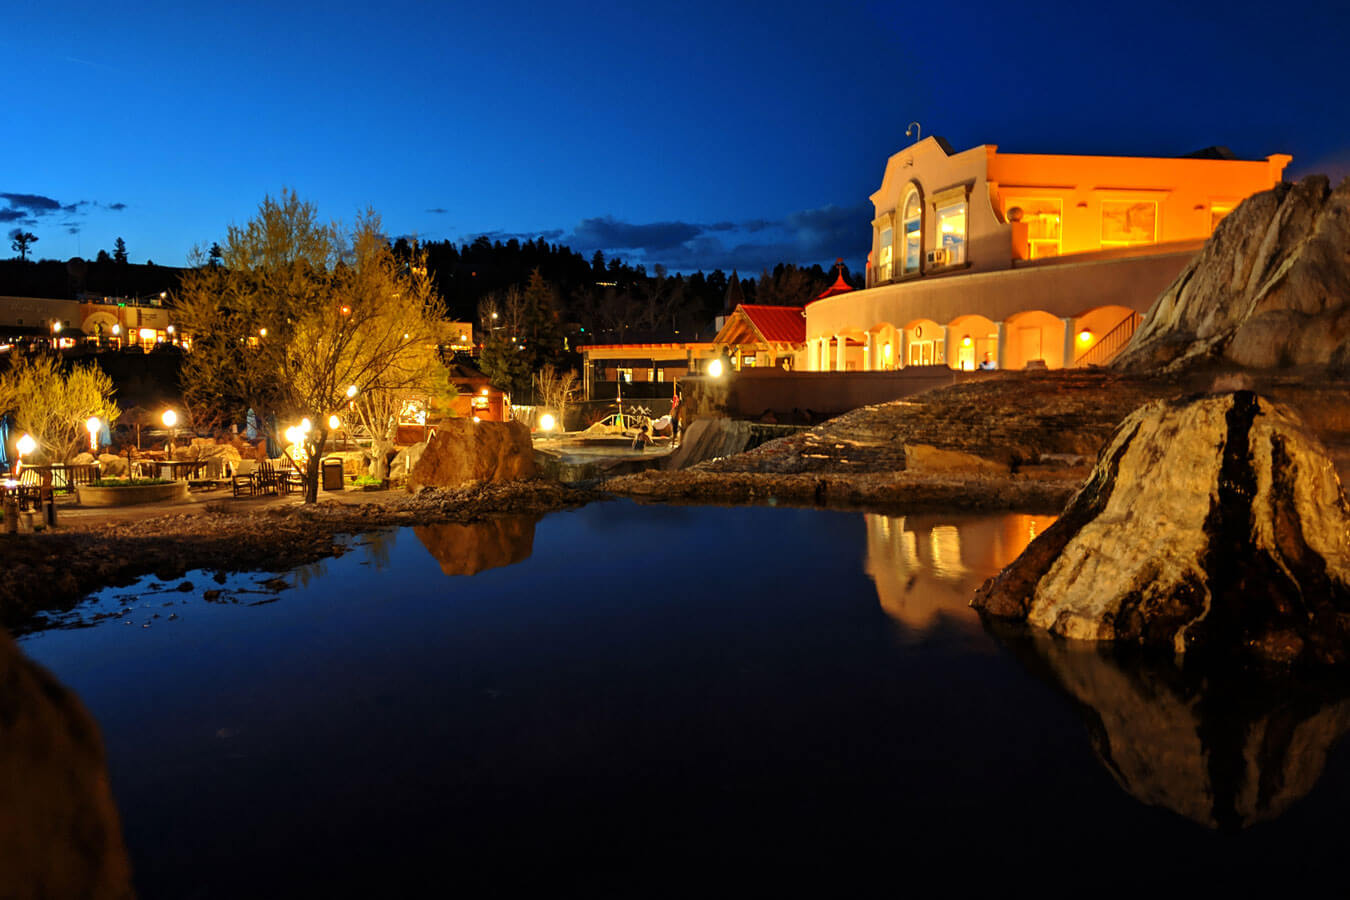 Join us for Pagosa Hot Springs Fest in downtown Pagosa Springs, Colorado